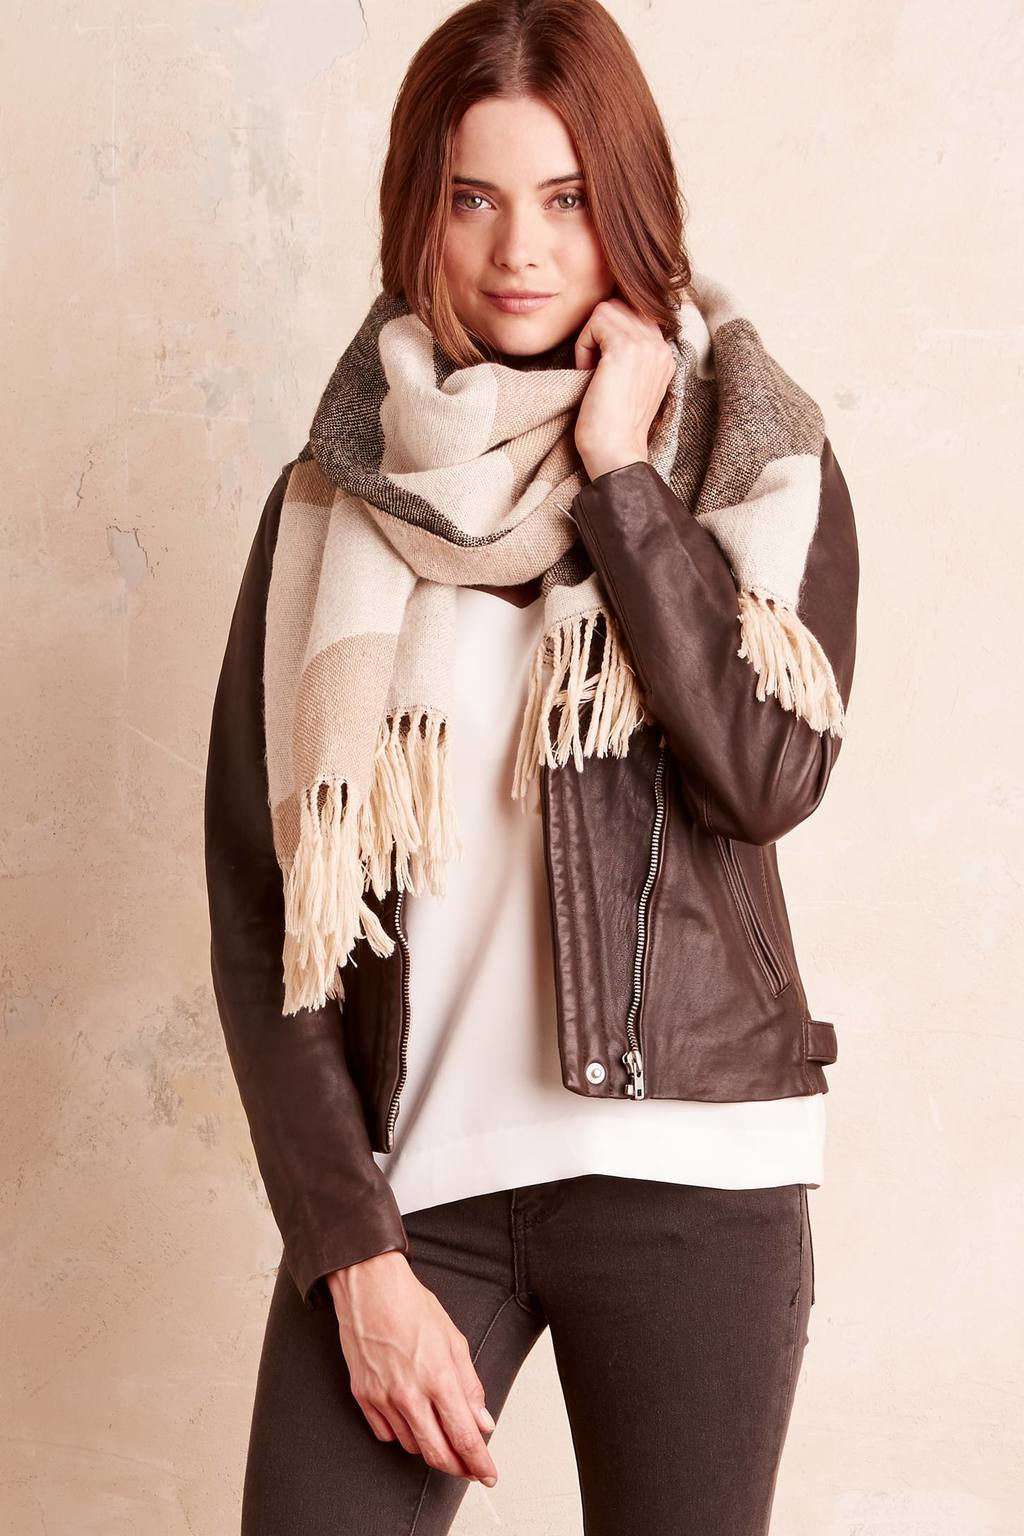 Ember Wool Scarf - secondary colour: taupe; predominant colour: charcoal; occasions: casual, creative work; type of pattern: standard; style: regular; size: large; material: knits; embellishment: fringing; pattern: colourblock; season: a/w 2016; wardrobe: highlight